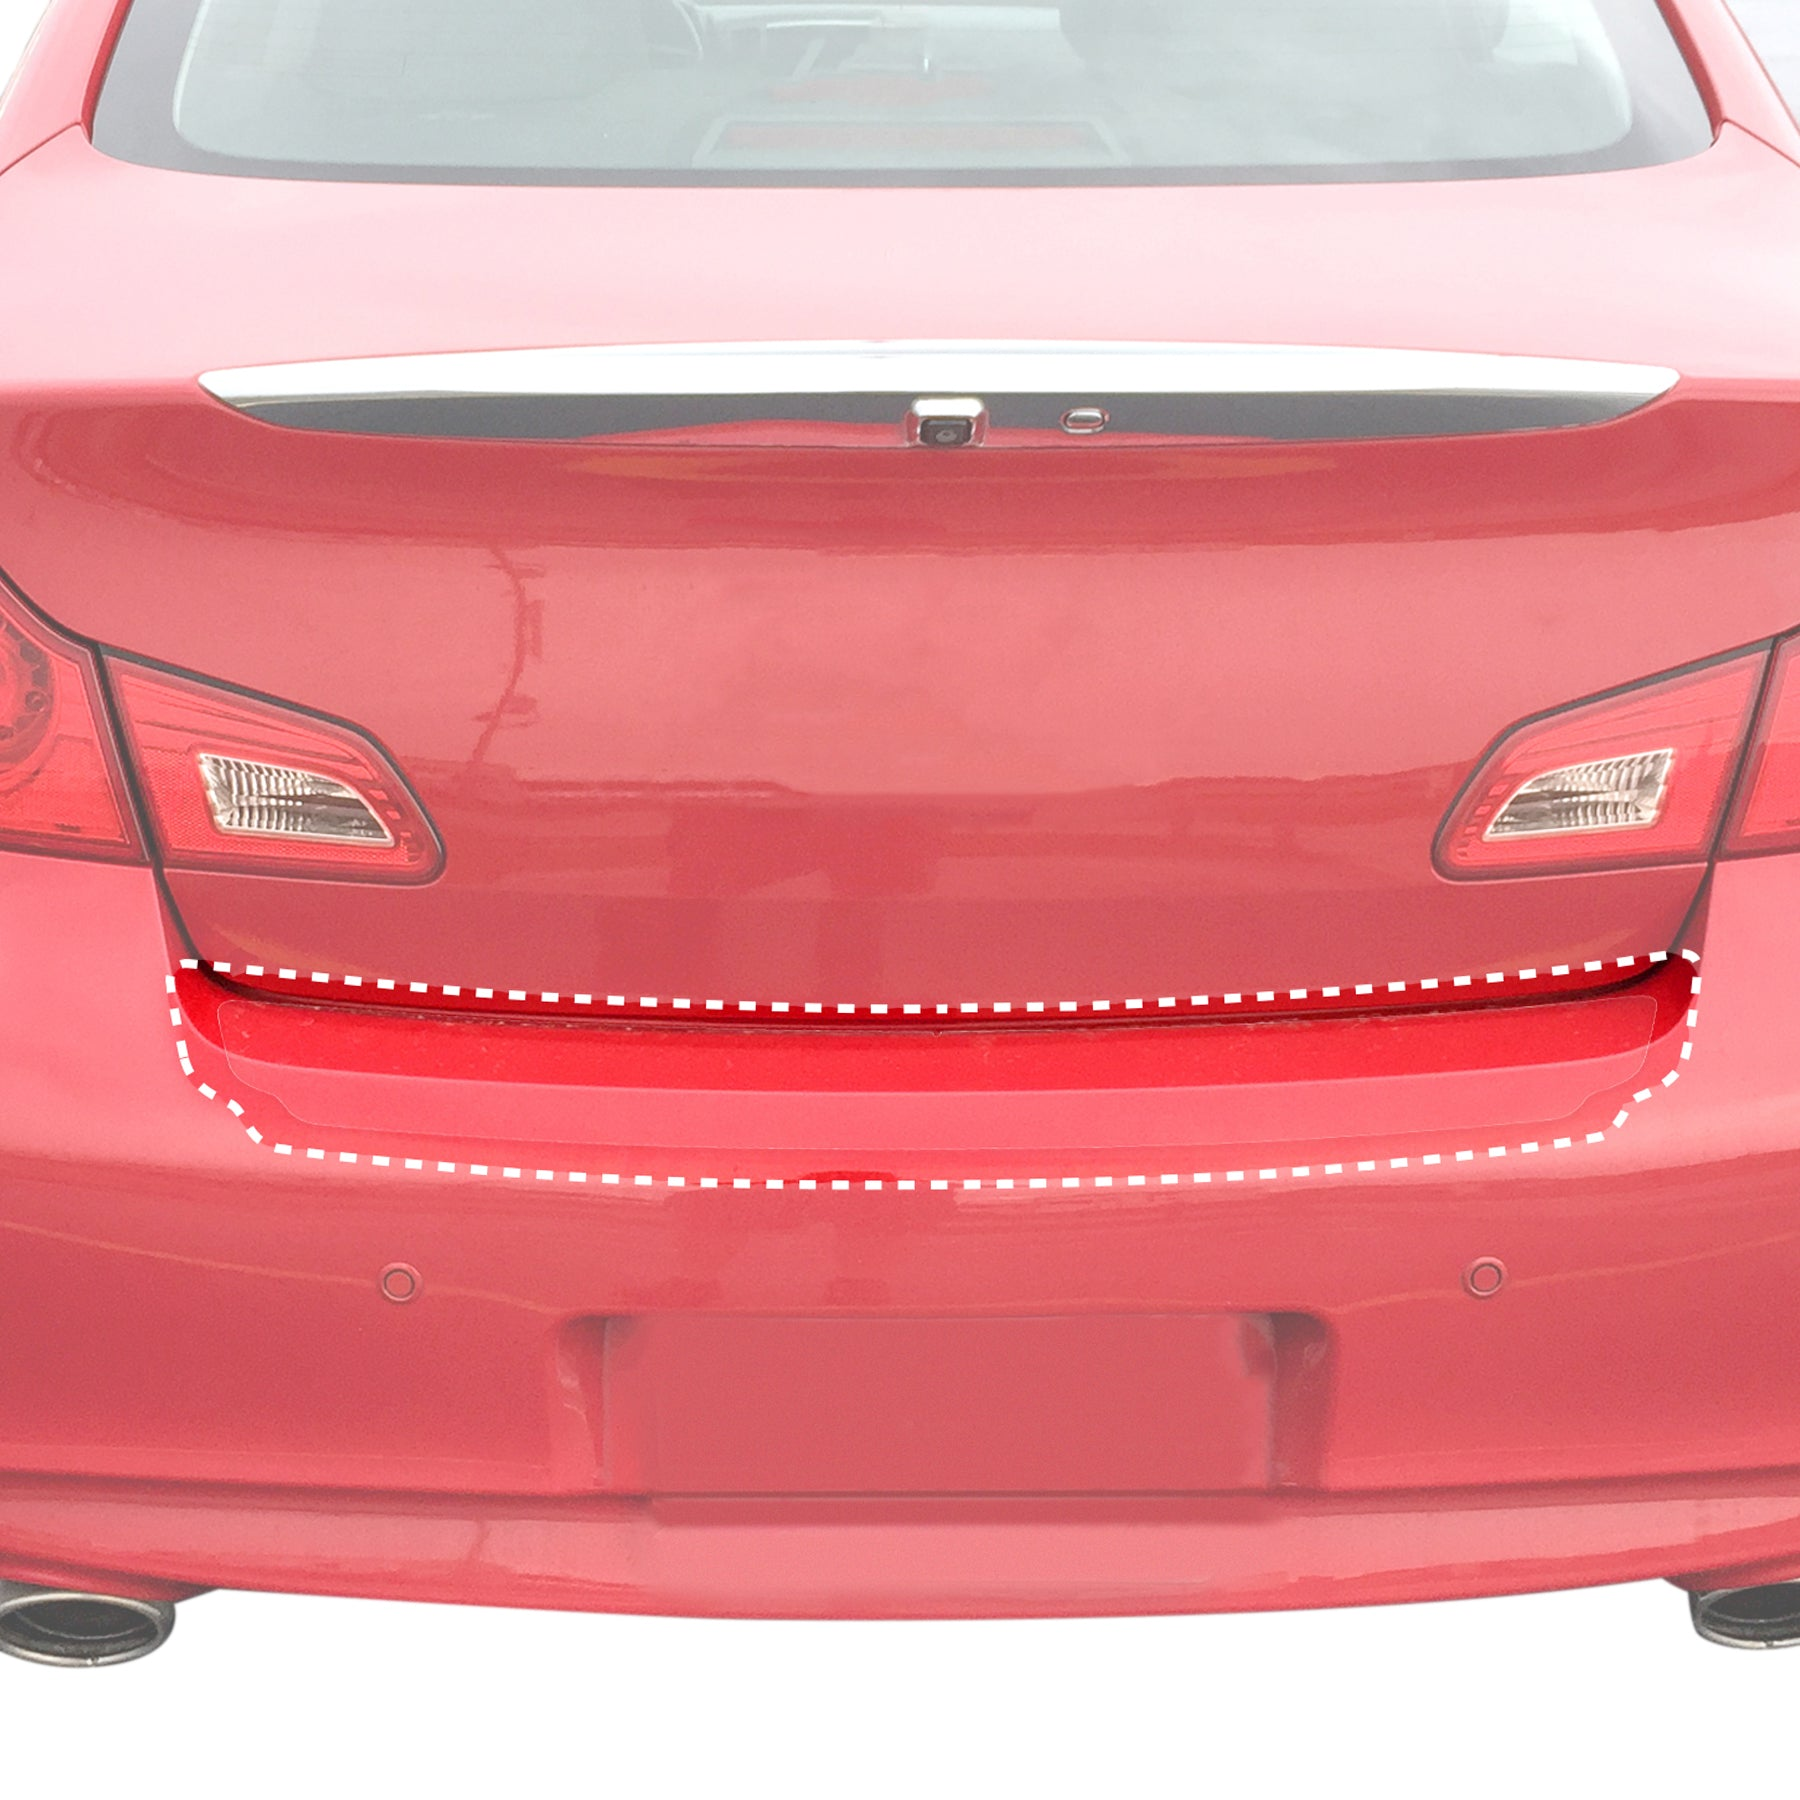 Red Hound Auto Rear Bumper Paint Protection Film Compatible with Infiniti 2011-2013 G37, 2007-2010 G35 and More Sedan 4dr 1pc PPF Custom Clear Self Healing Invisible Cover